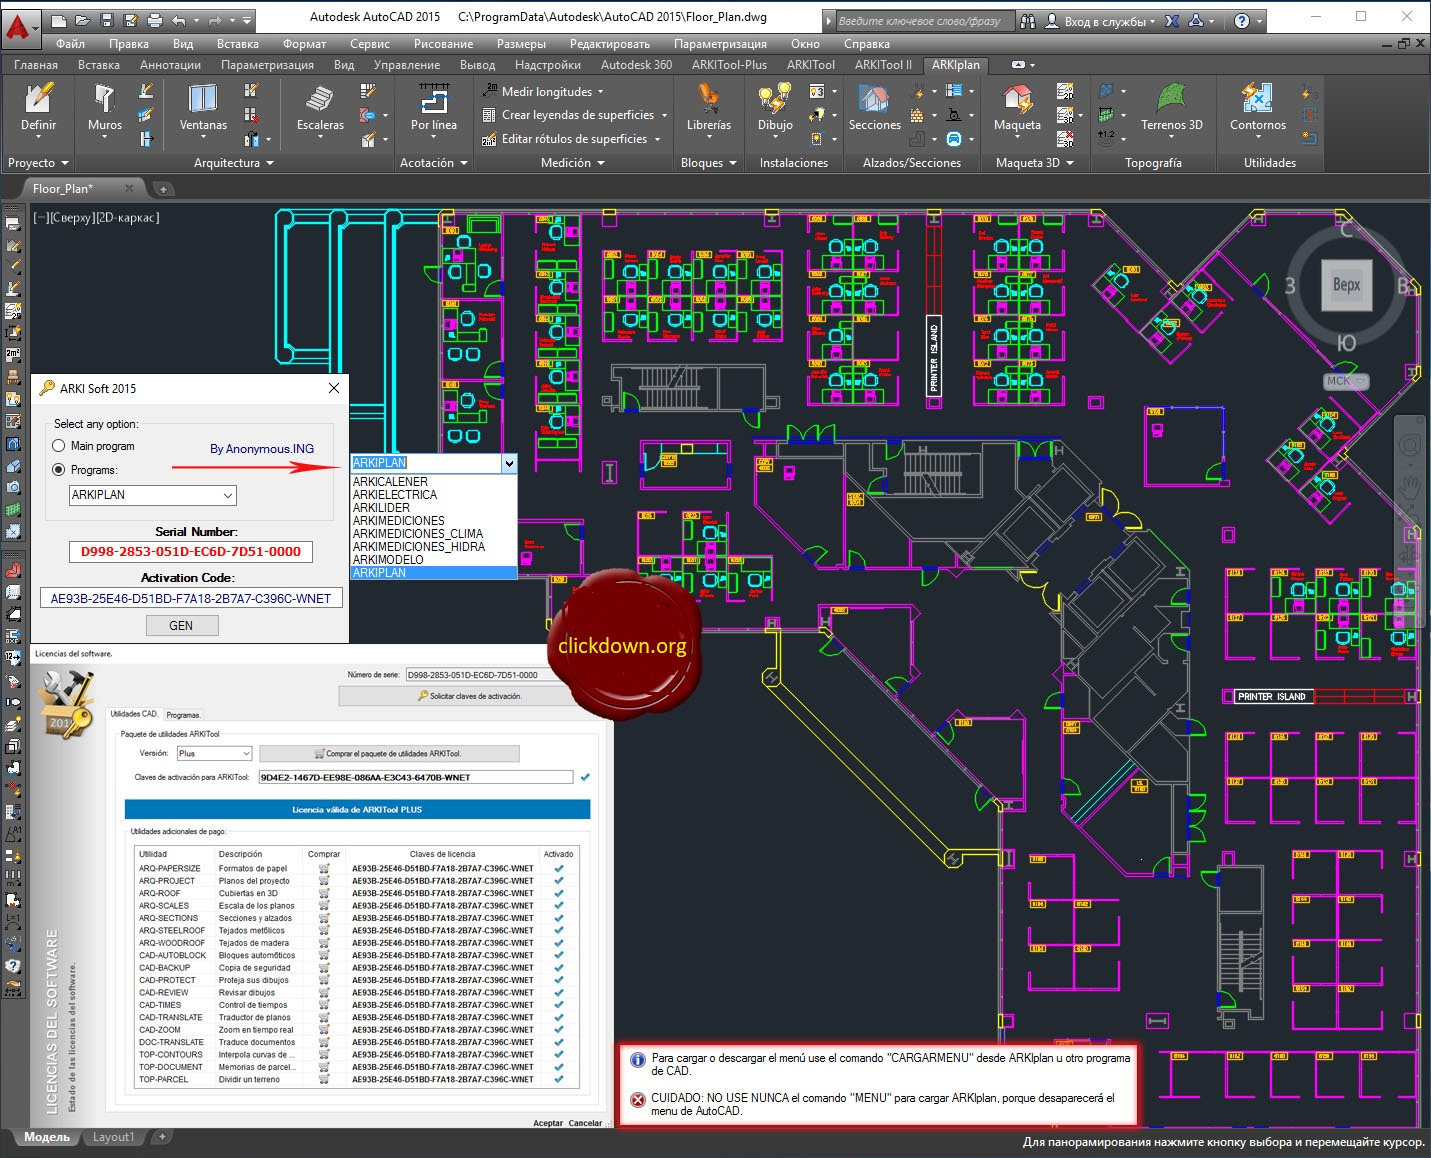 Working with ARKIsoft 2015 Suite full license